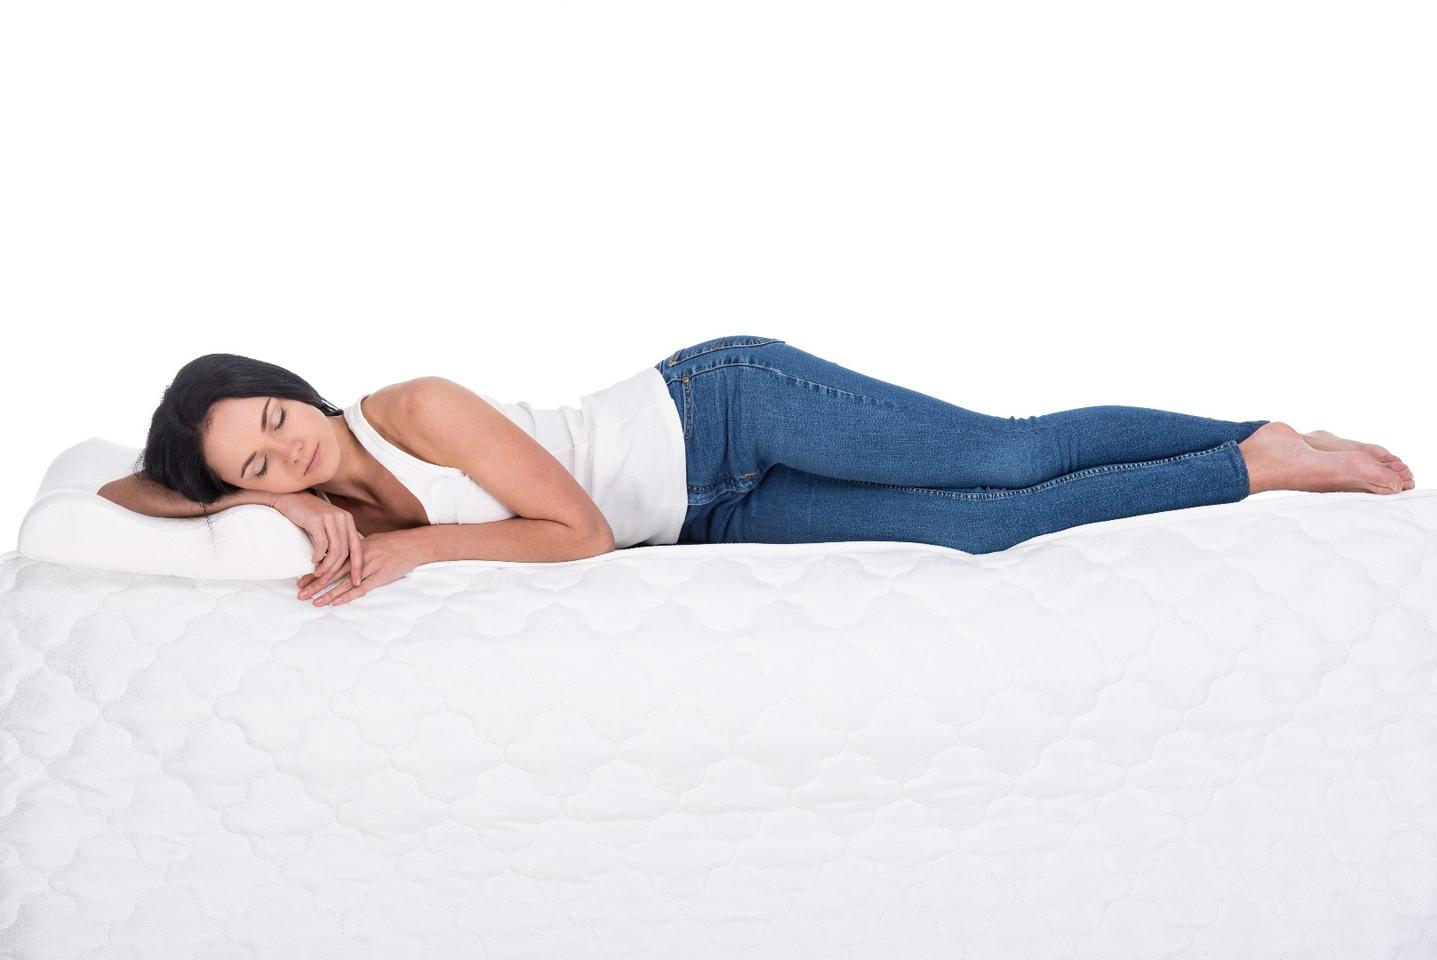 Sleeping on one's side could help clear waste and other harmful chemical solutes from the brain